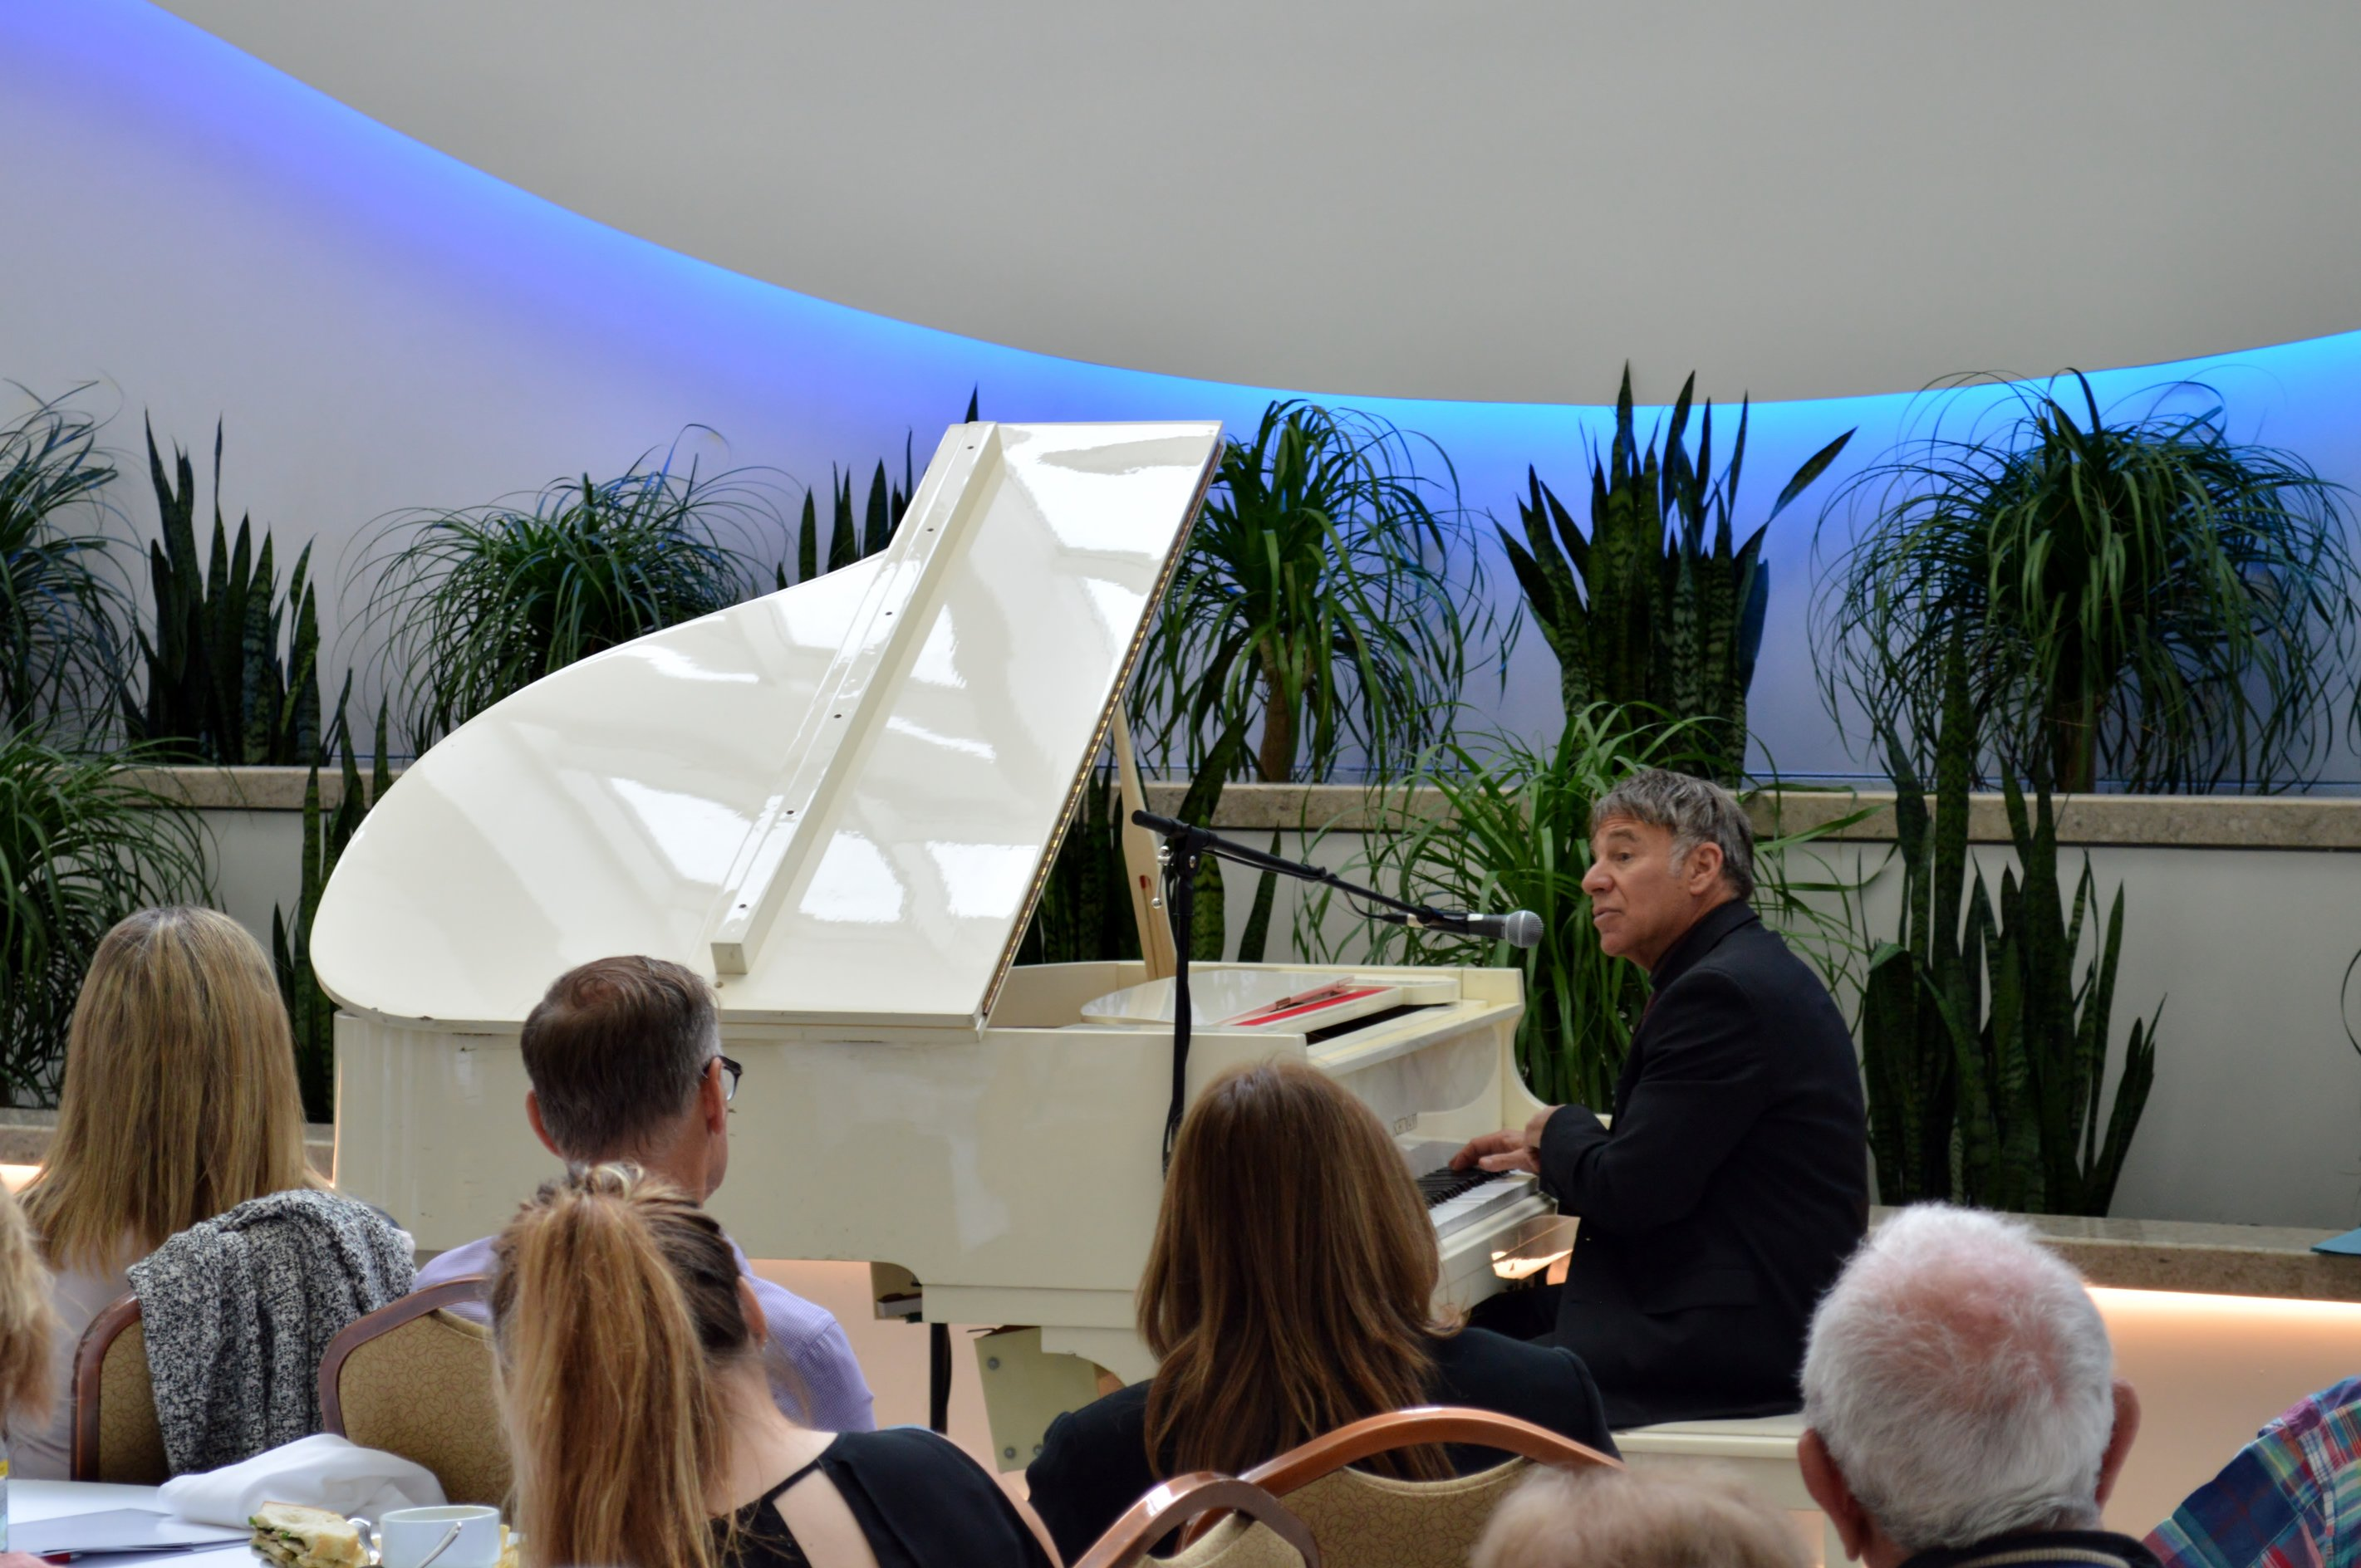 Stephen Schwartz at piano